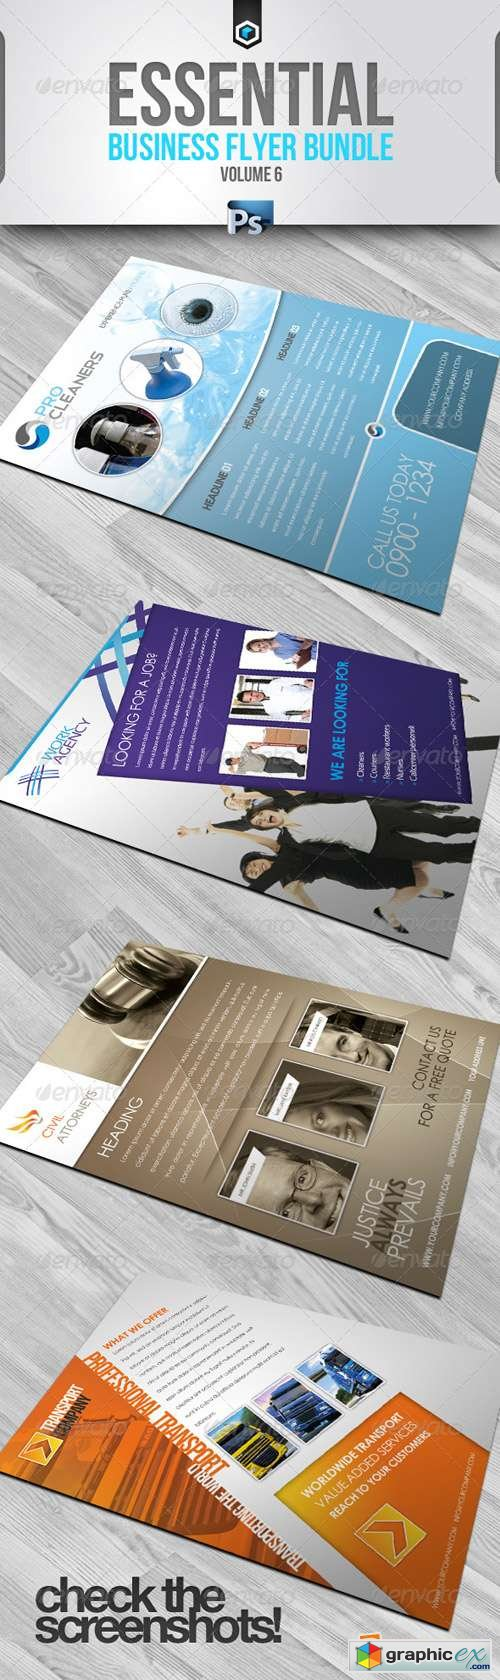 RW Essential Business Flyers Bundle Vol 6 294436